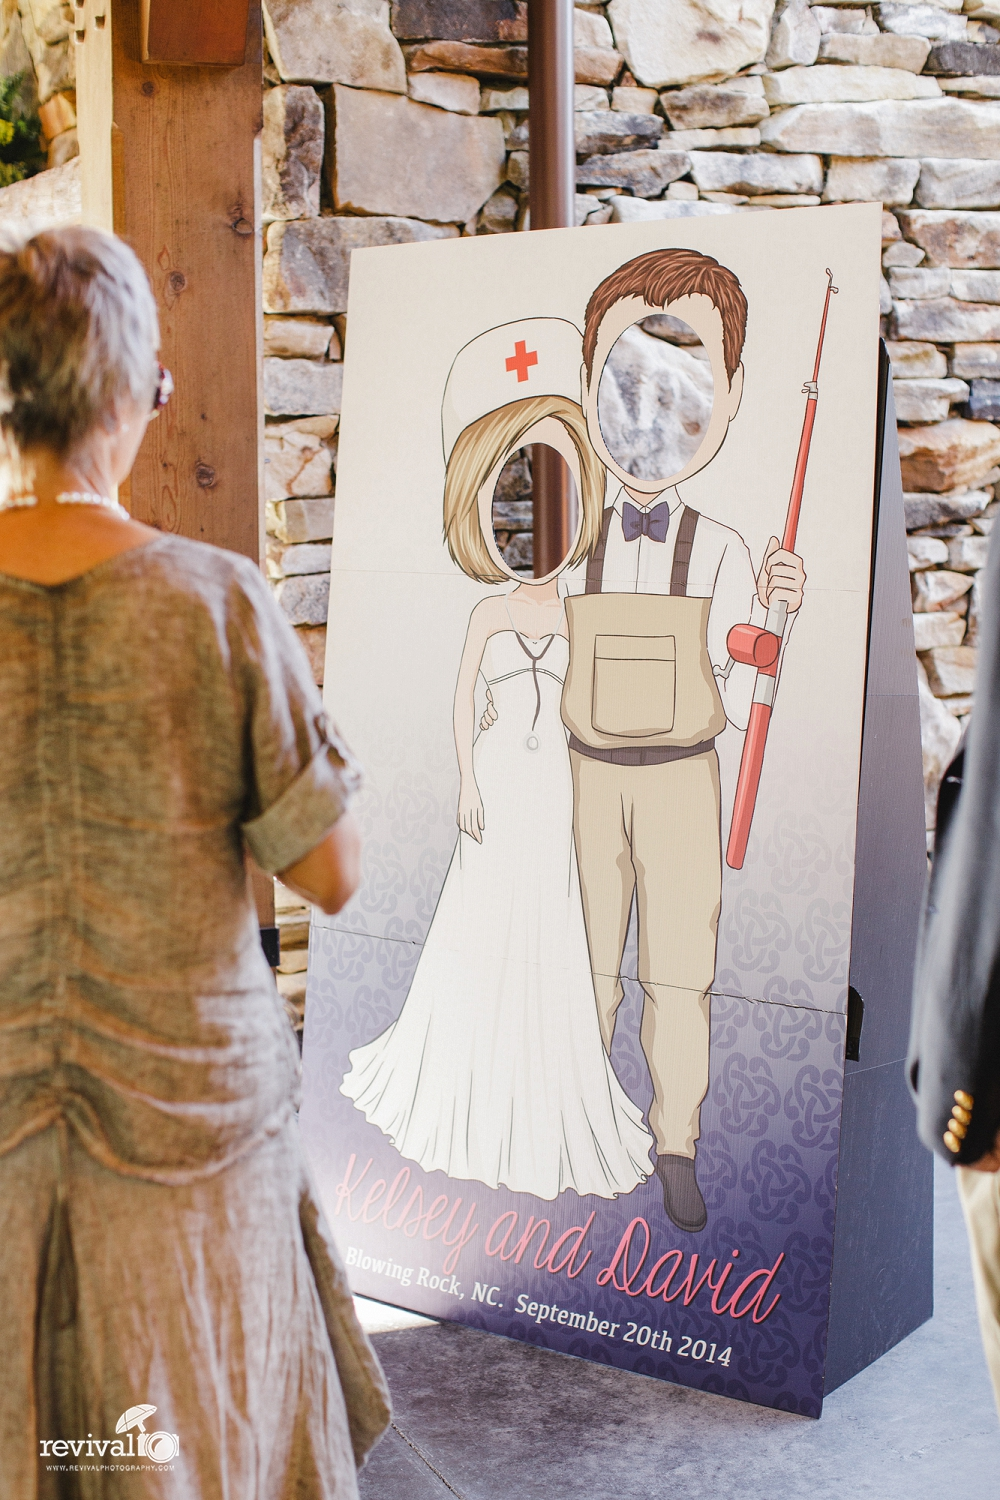 Photobooth/Bride + Groom Cardboard Cutout Photo Spot.